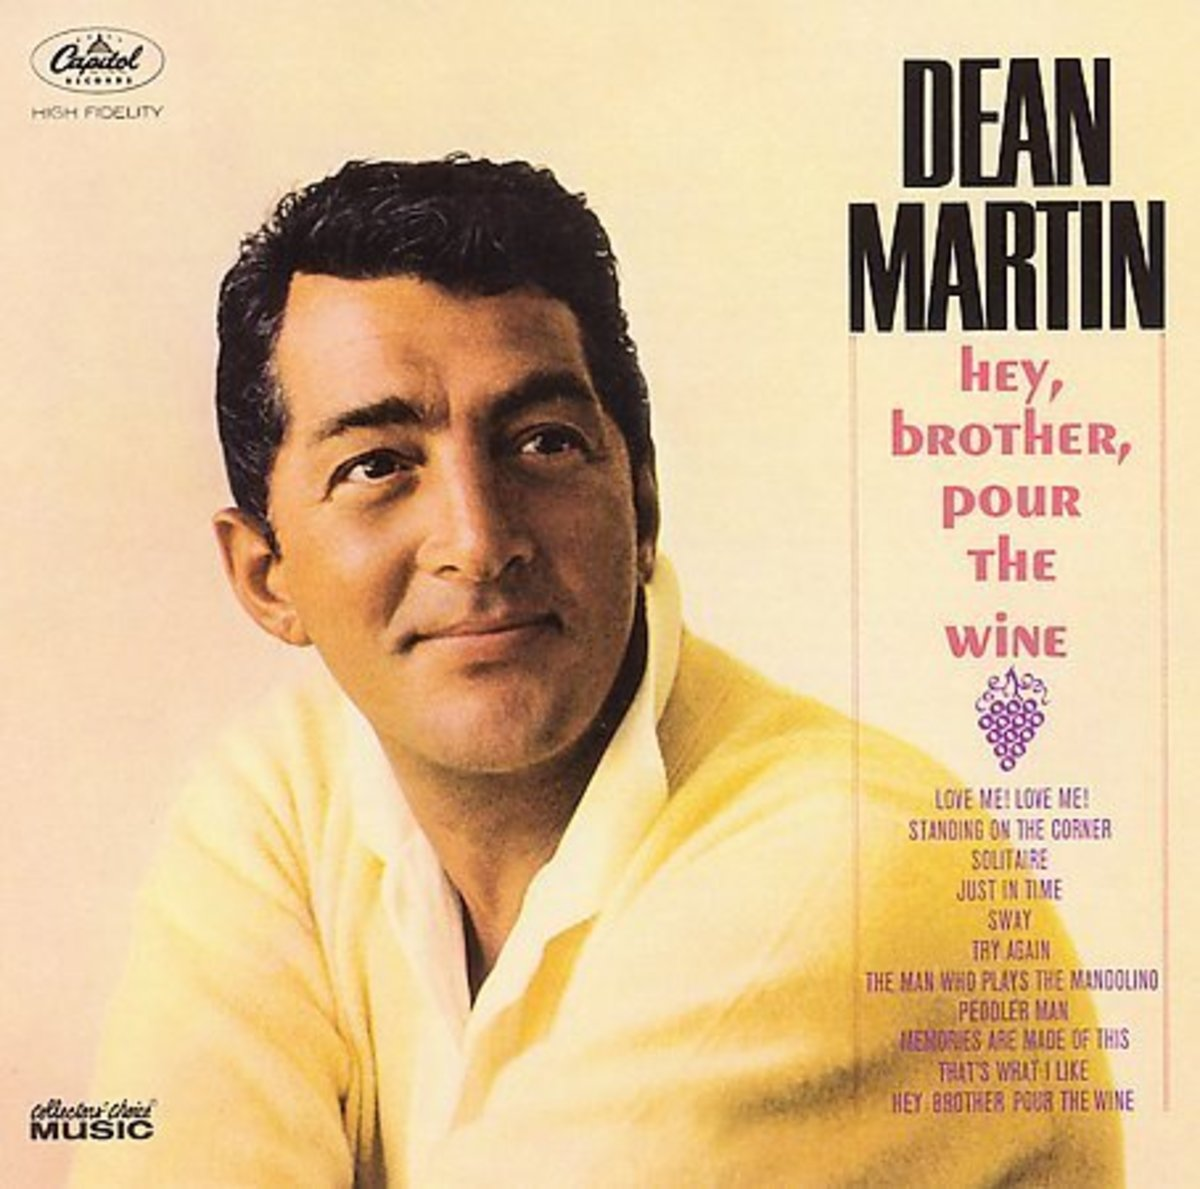 Hey Brother, Pour the wine. 1954 album by Dean Martin (Capitol Records). It features the song 'Sway'